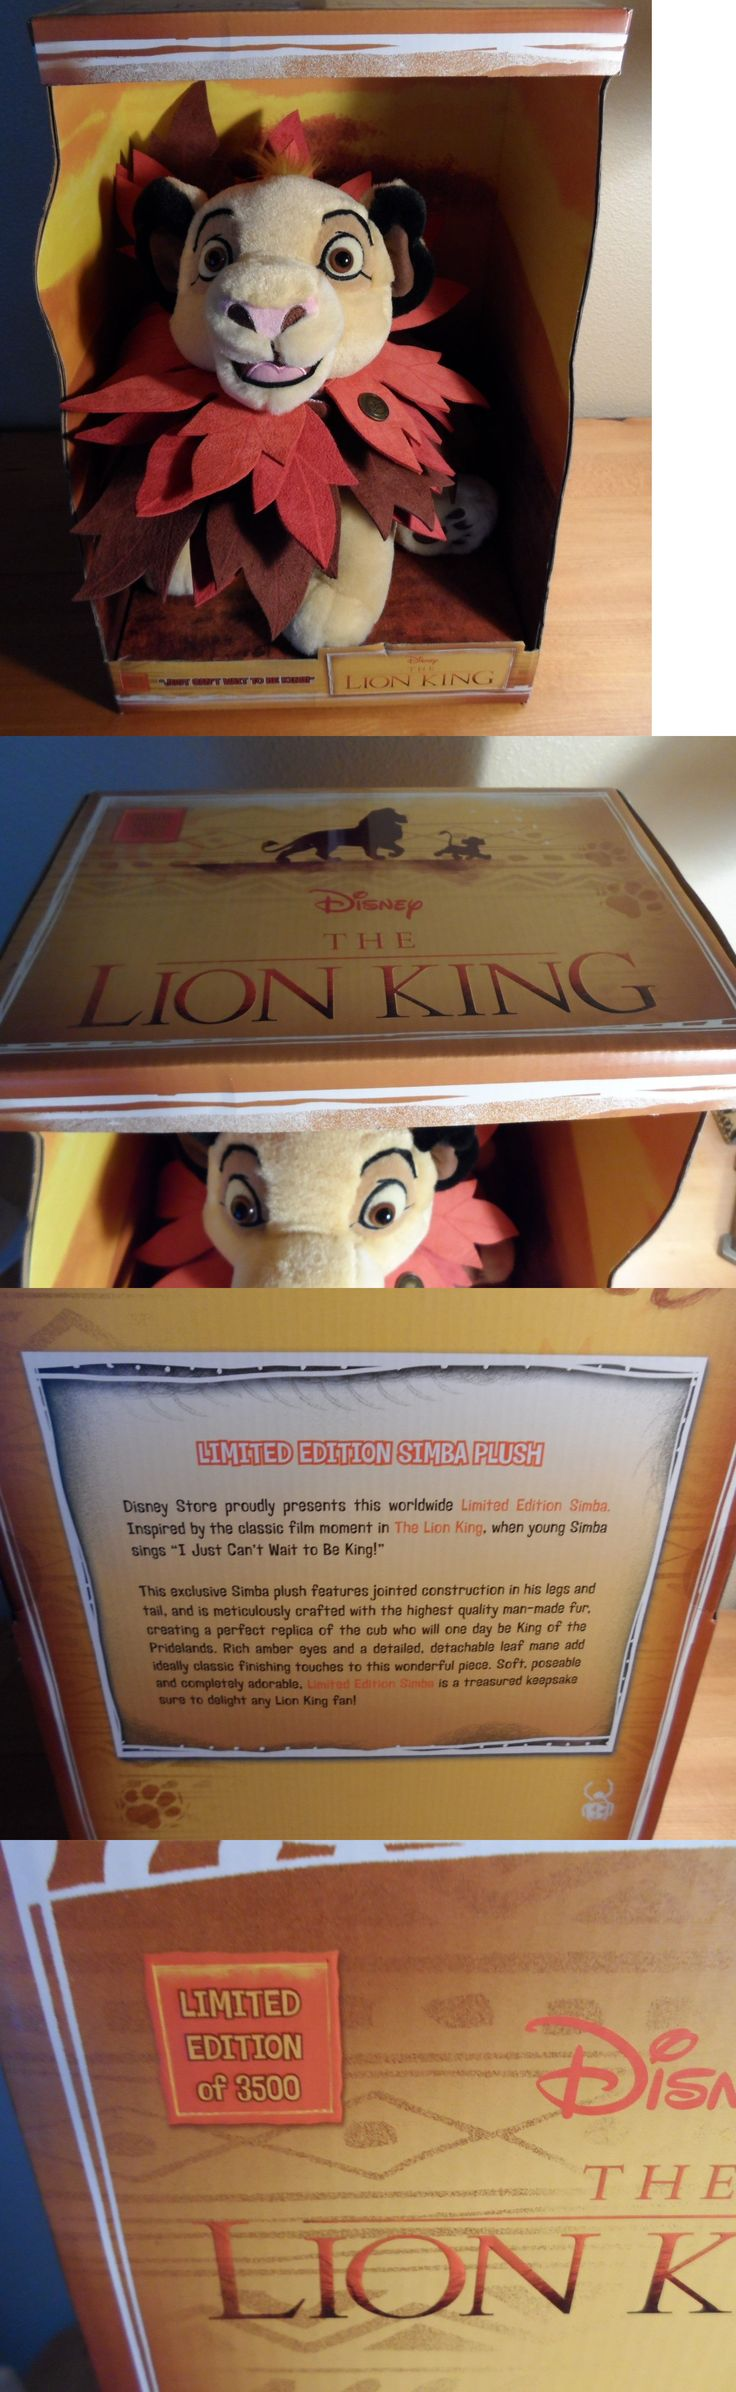 Lion king 44037 disney store the lion king worldwide simba plush toy limited edition of